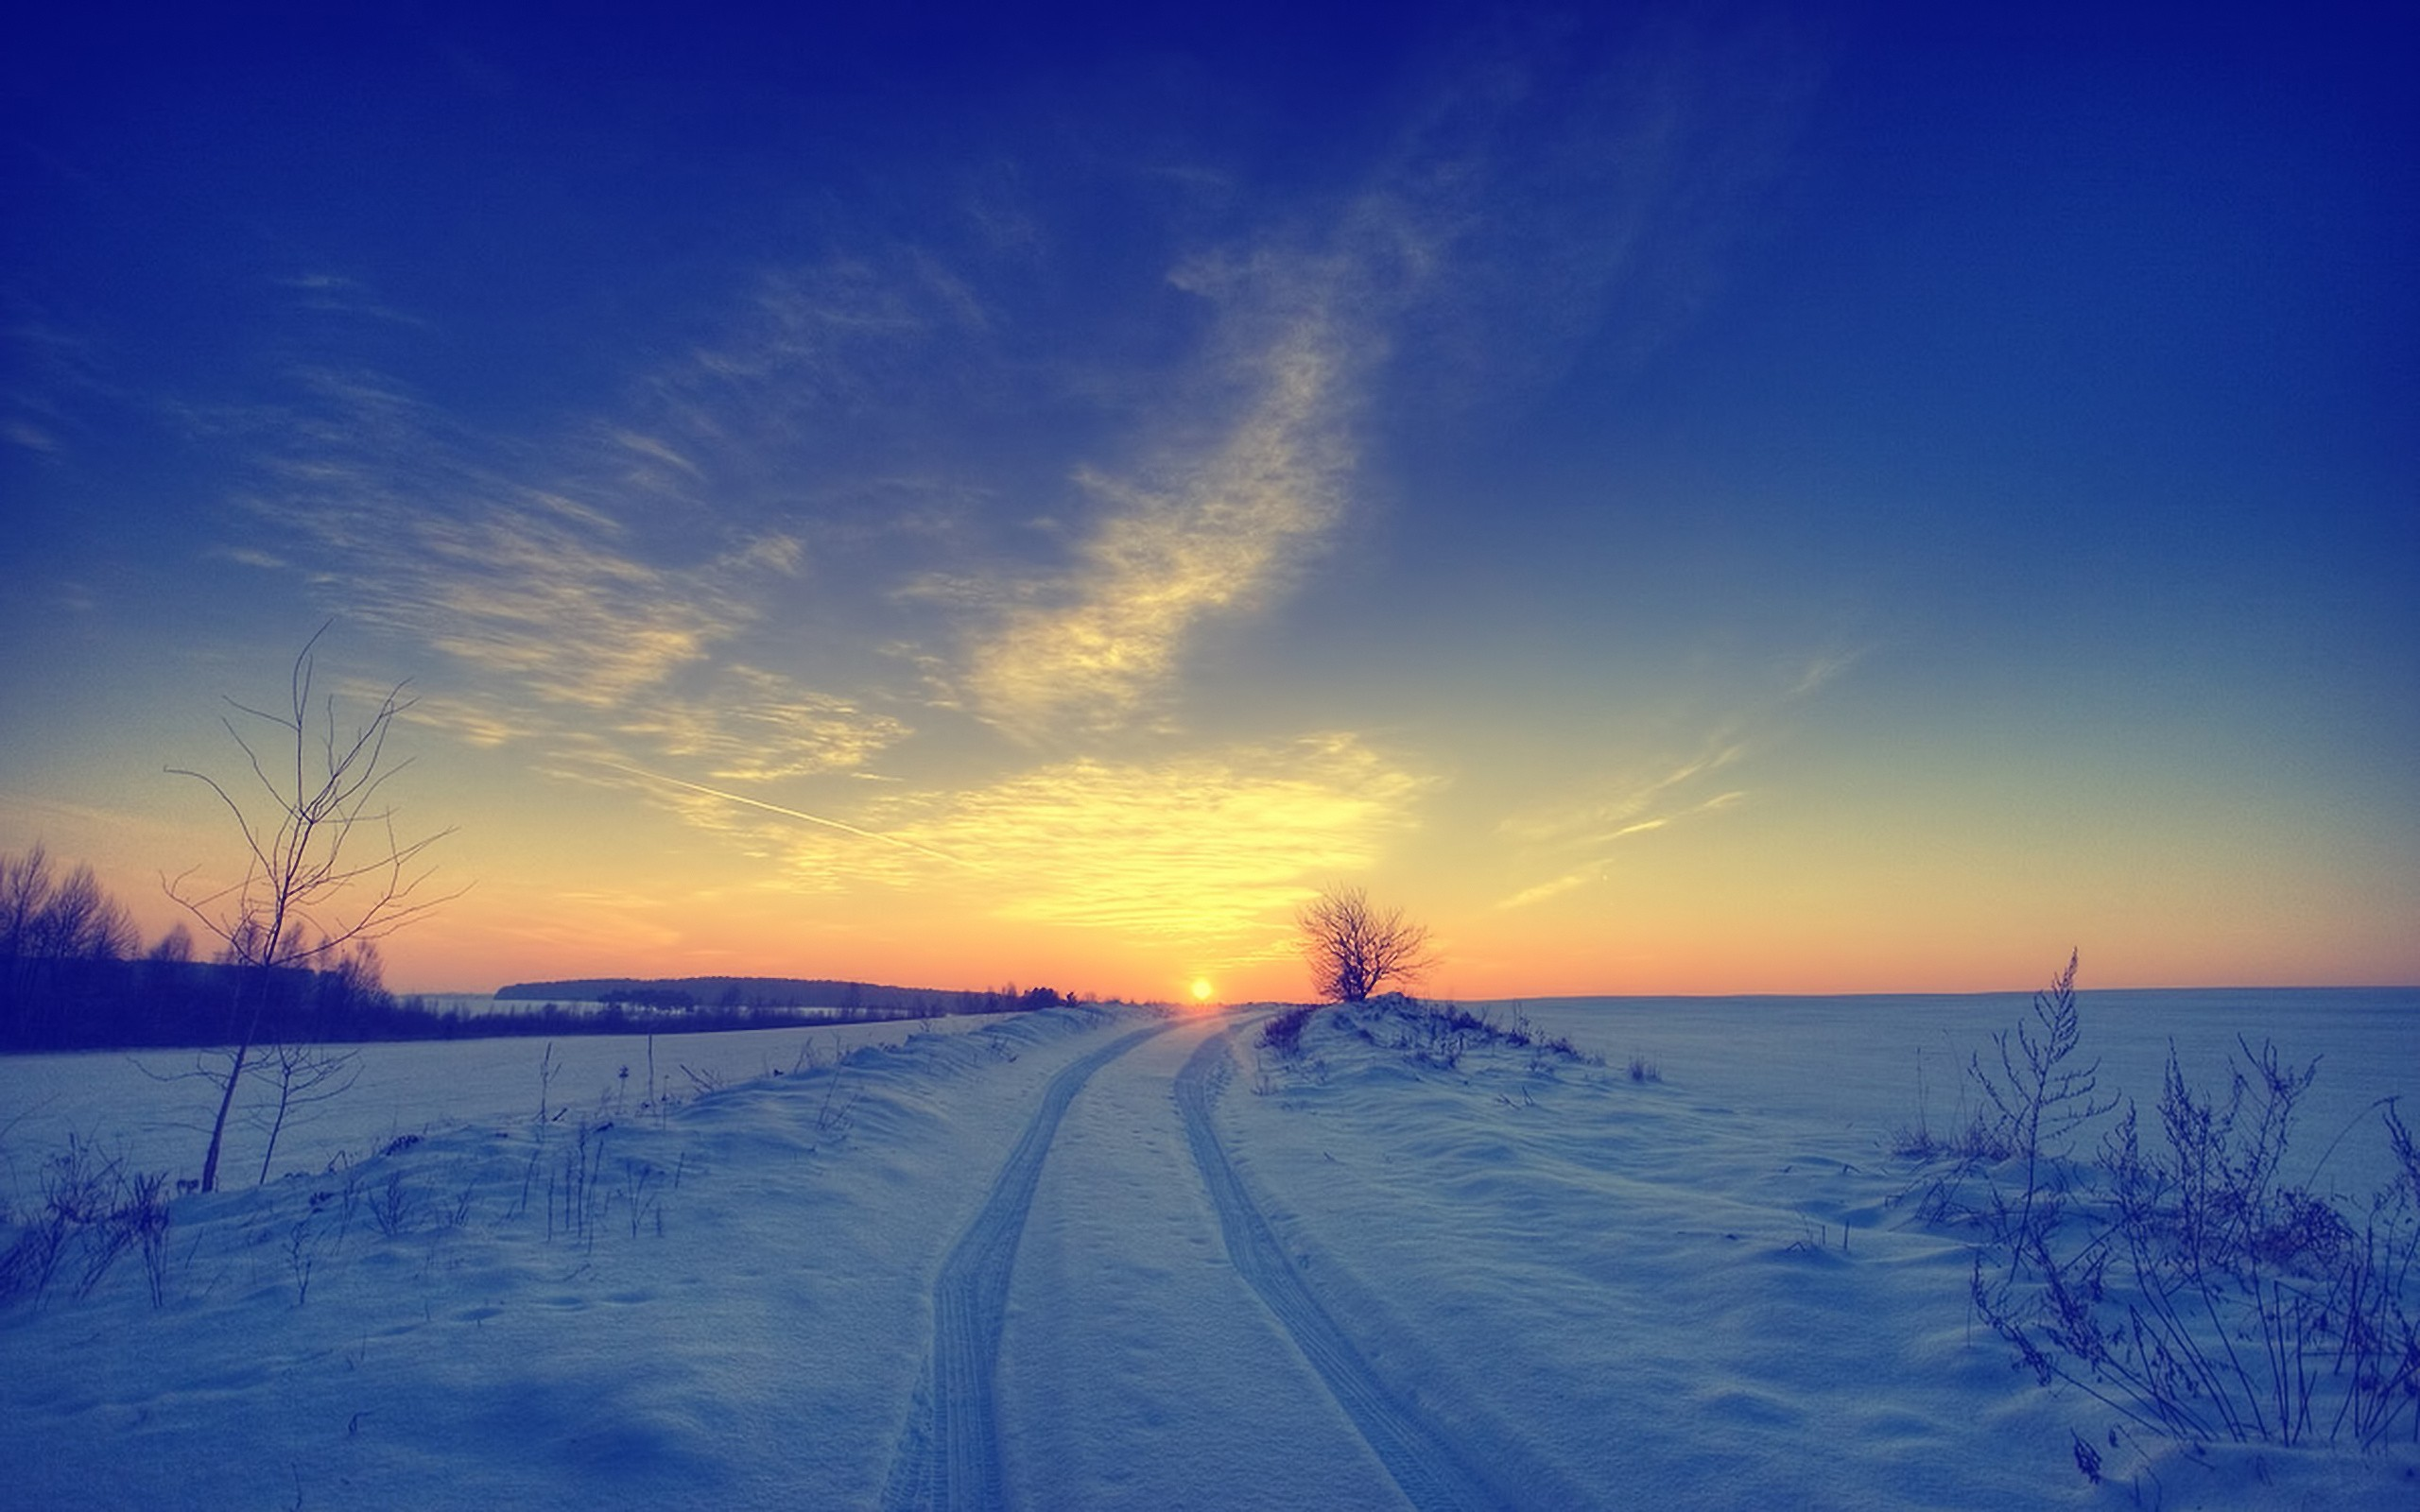 File: Winter Sunset Full HD.jpg | Alena Beamon | 2560x1600 px